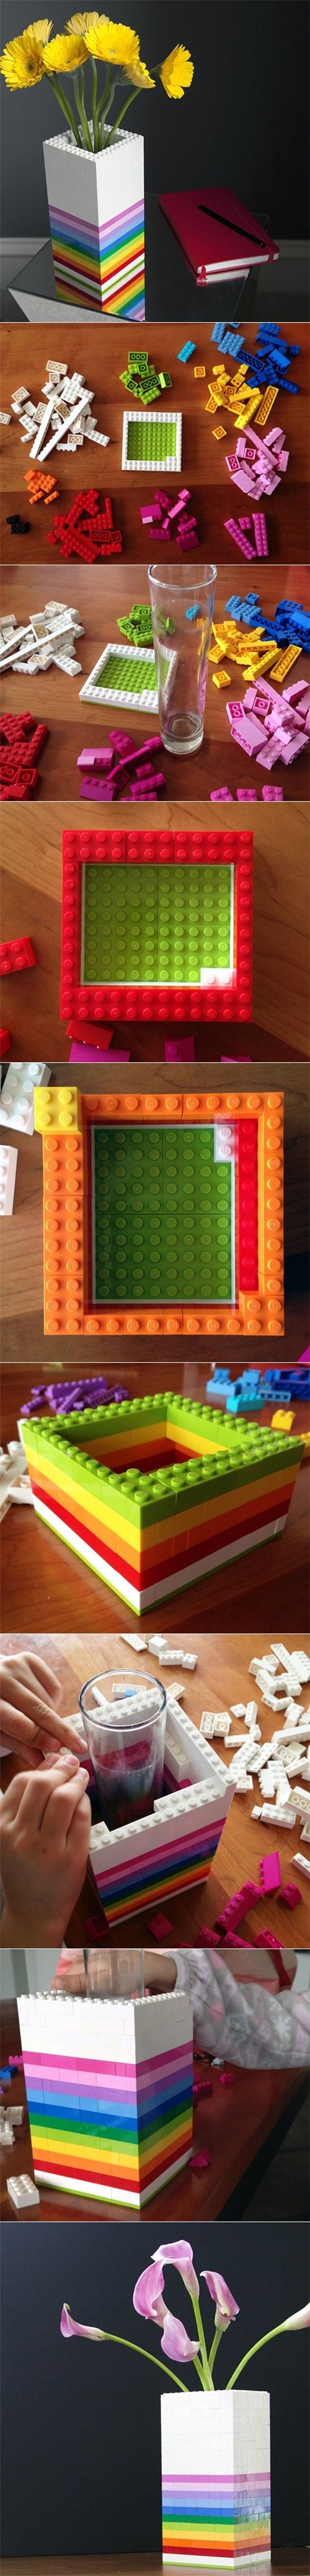 lego-proyects